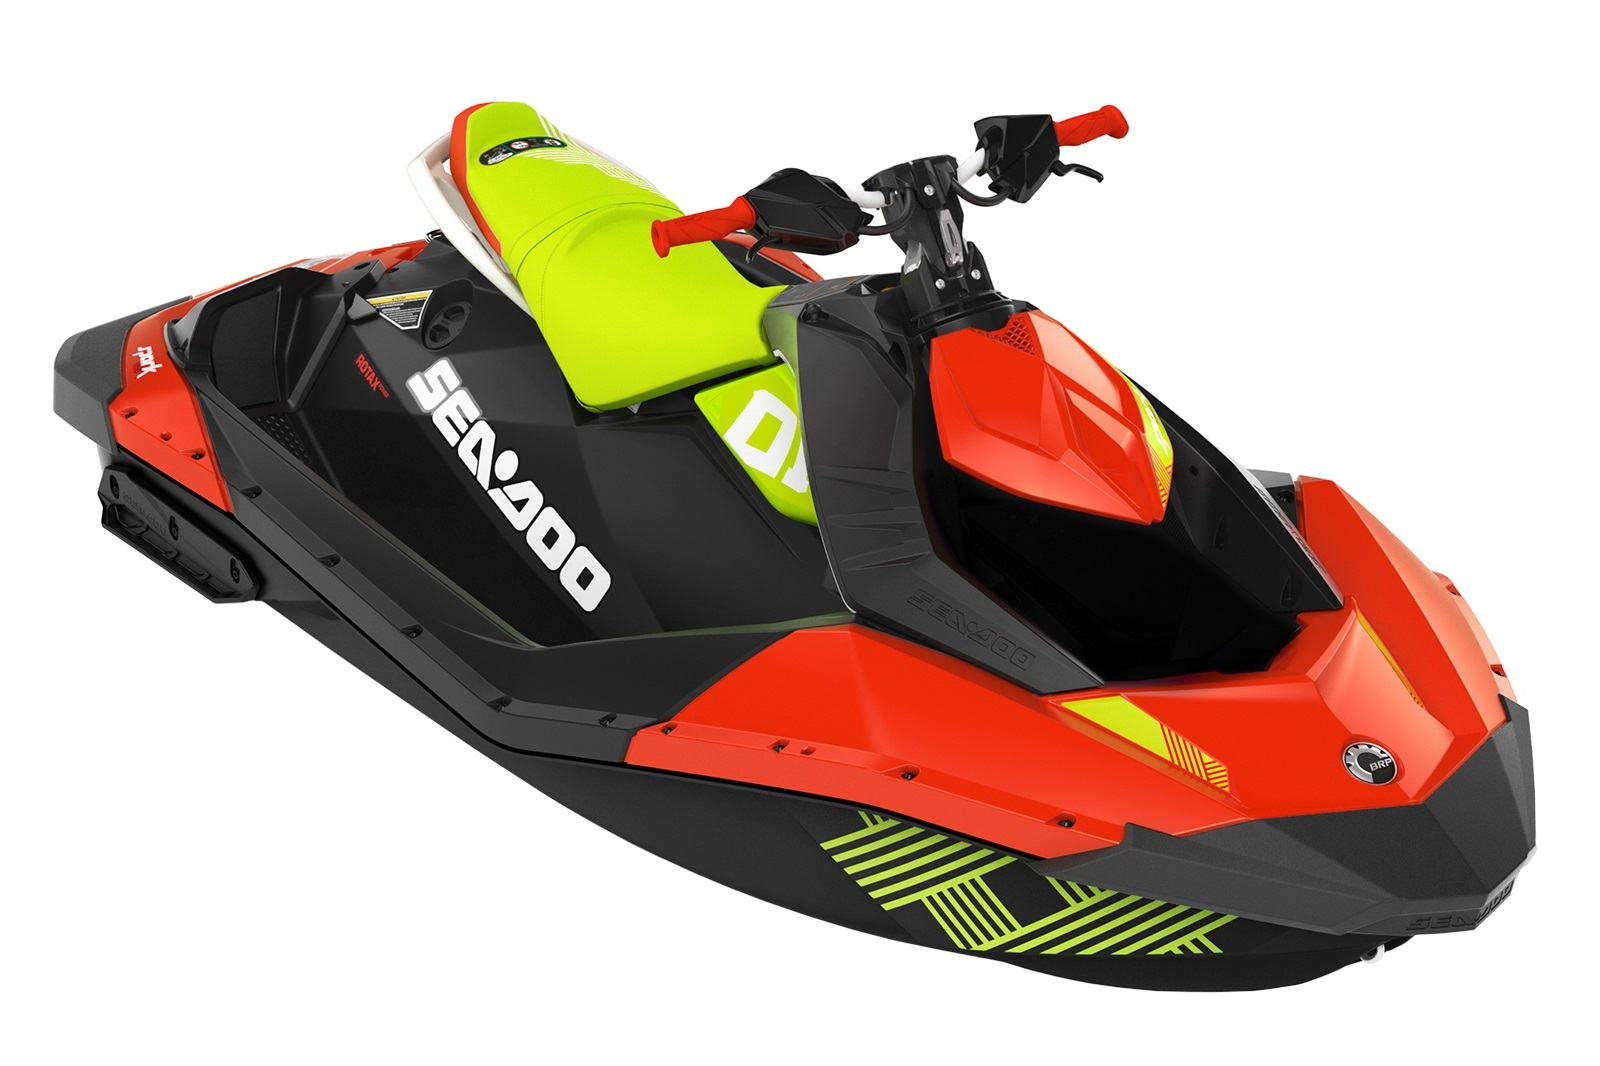 Sea Doo SPARK Trixx 900 HO ACE 2-up iBR 90hp zeleno-červený